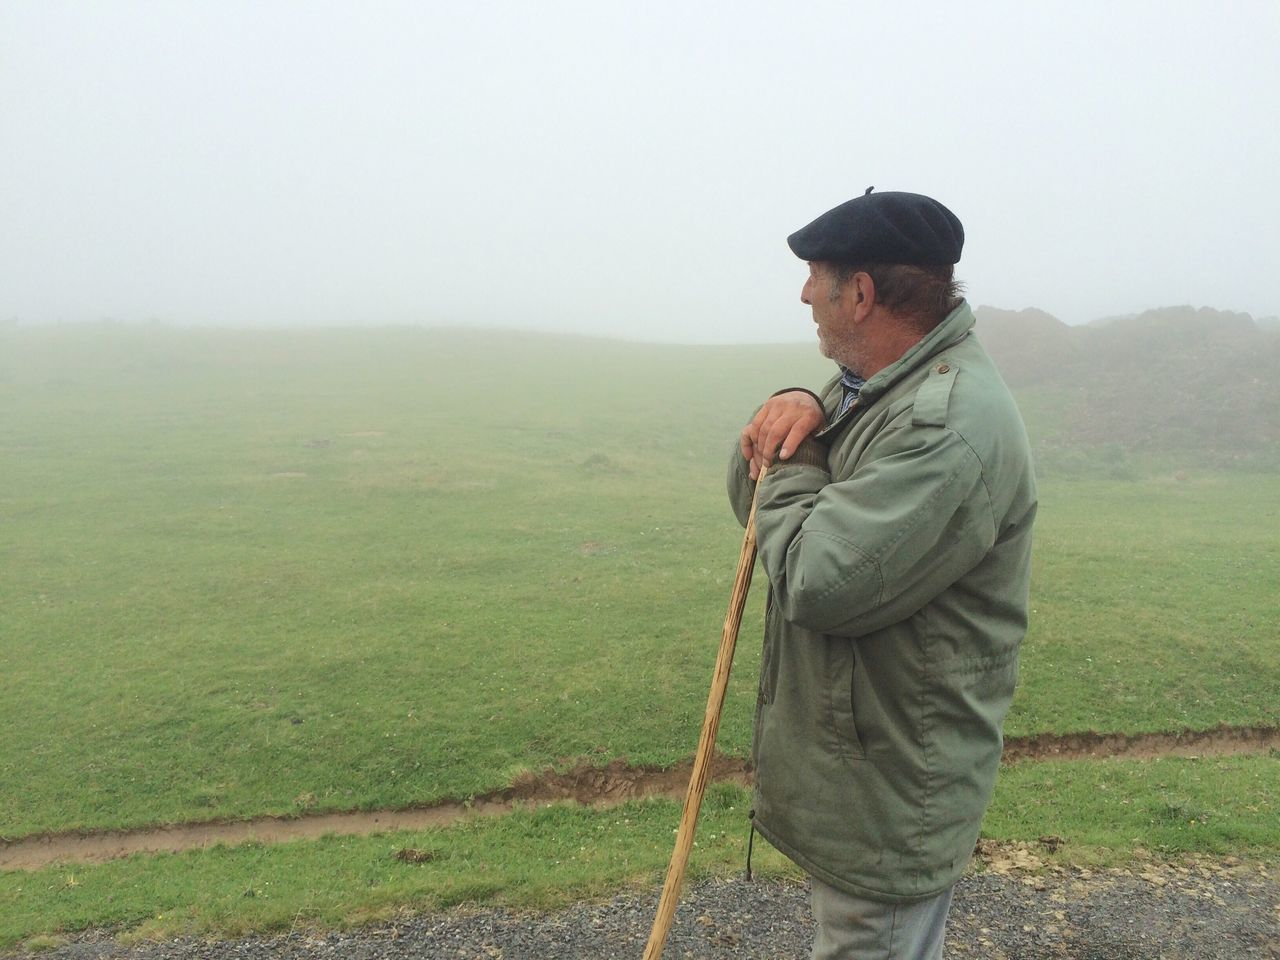 Senior Man Holding Cane While Standing On Road By Field Against Sky In Foggy Weather